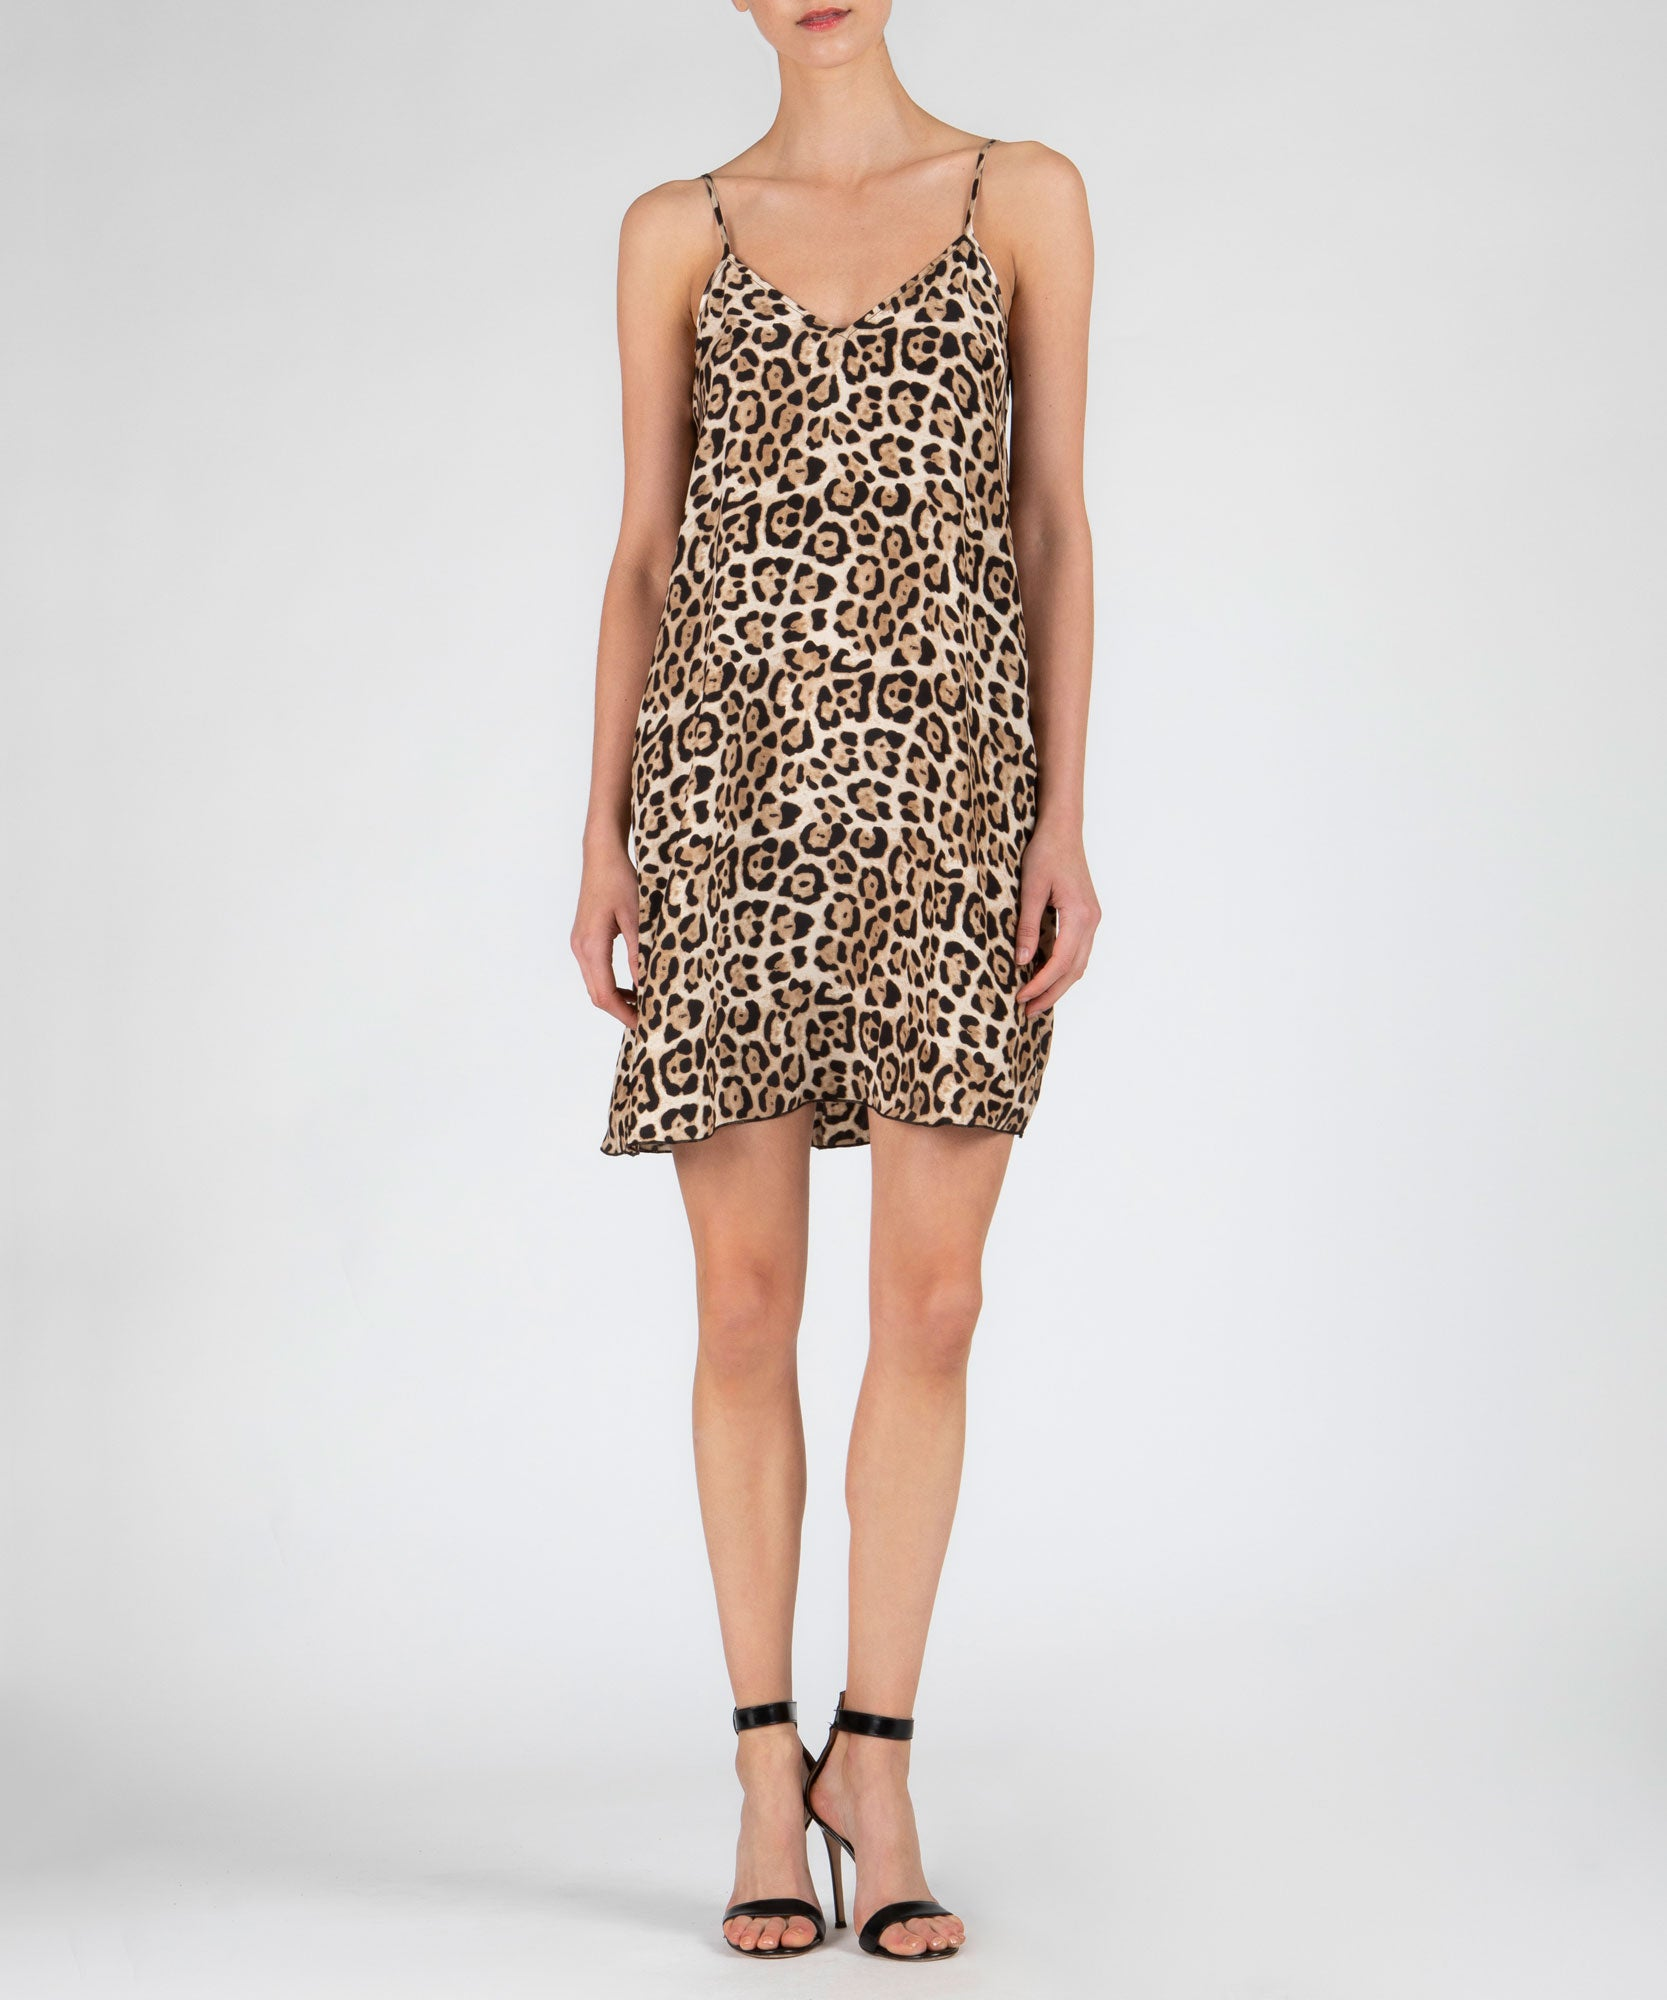 Leopard Silk Slip Dress - Women's Silk Dress by ATM Anthony Thomas Melillo